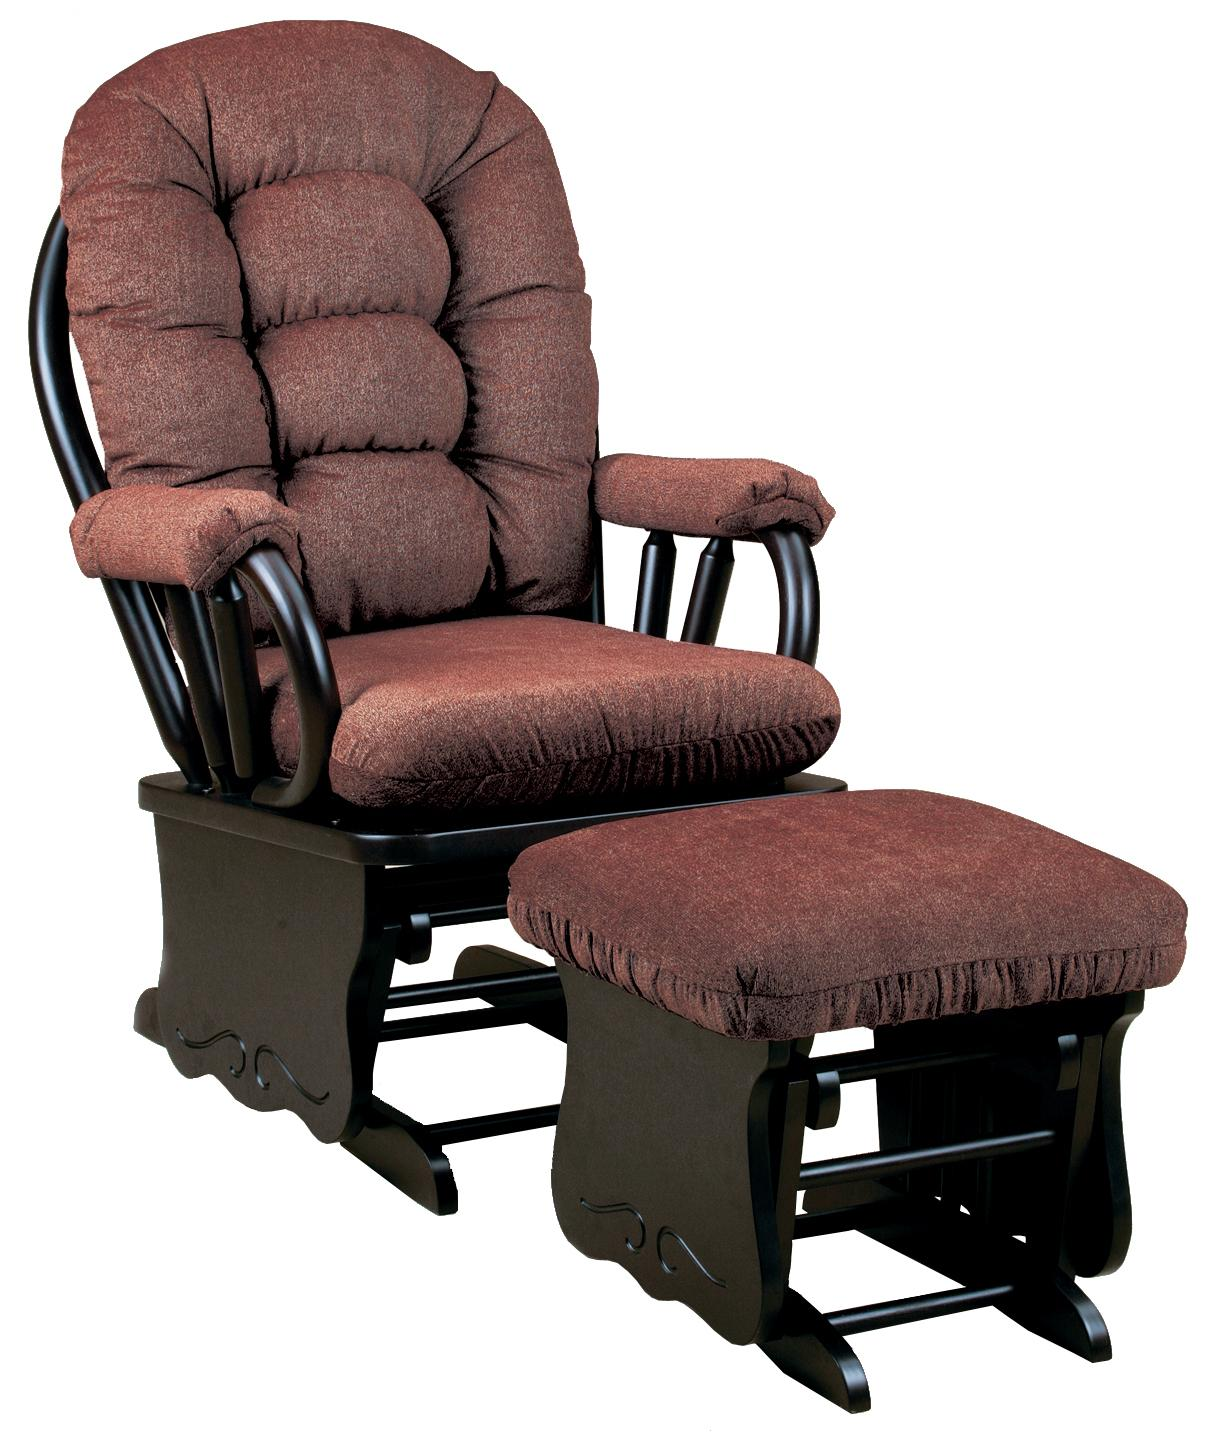 Best home furnishings bedazzle gliding rocker and ottoman for Best chair and ottoman